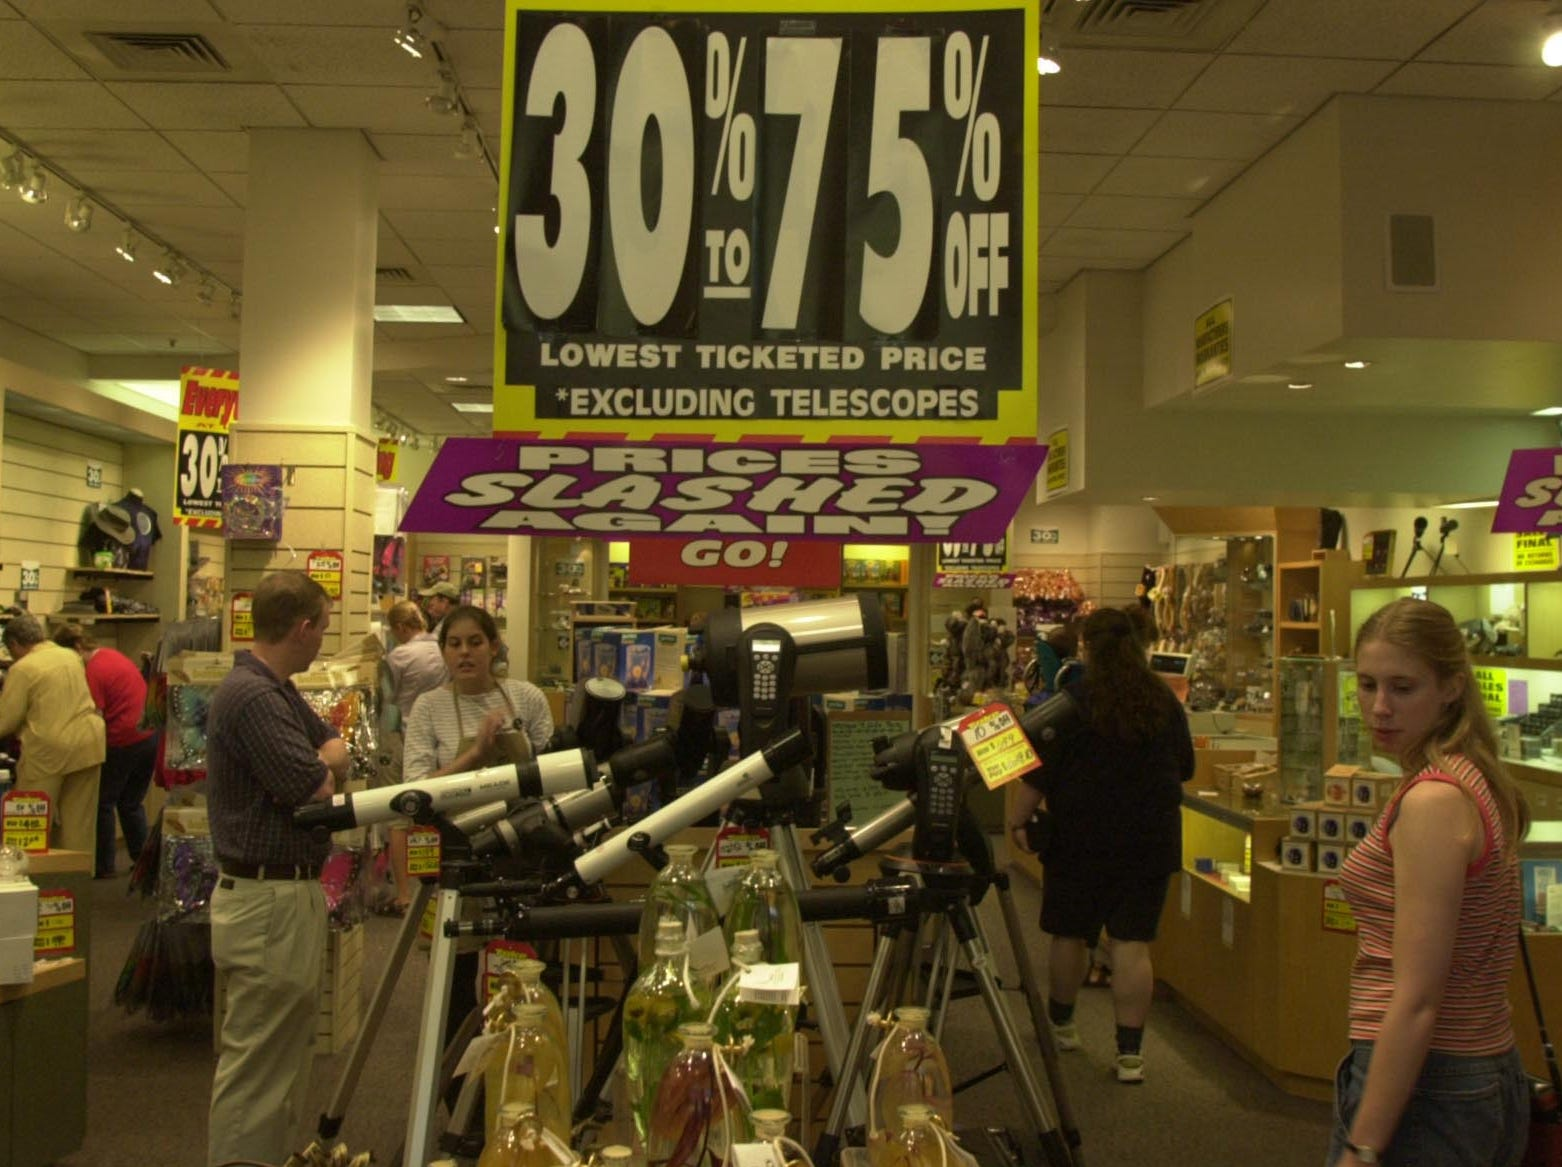 Carissa Magnusson, right, looks at sale items at Natural Wonders in West Town Mall as a store employee Jennifer Huskey talks to Mike Thomas, center, about telescopes Wednesday.  Natural Wonders is the latest speciality store to go under at West Town , along with NASCAR, Warner Bros., and the WKOP-Public Television Store.